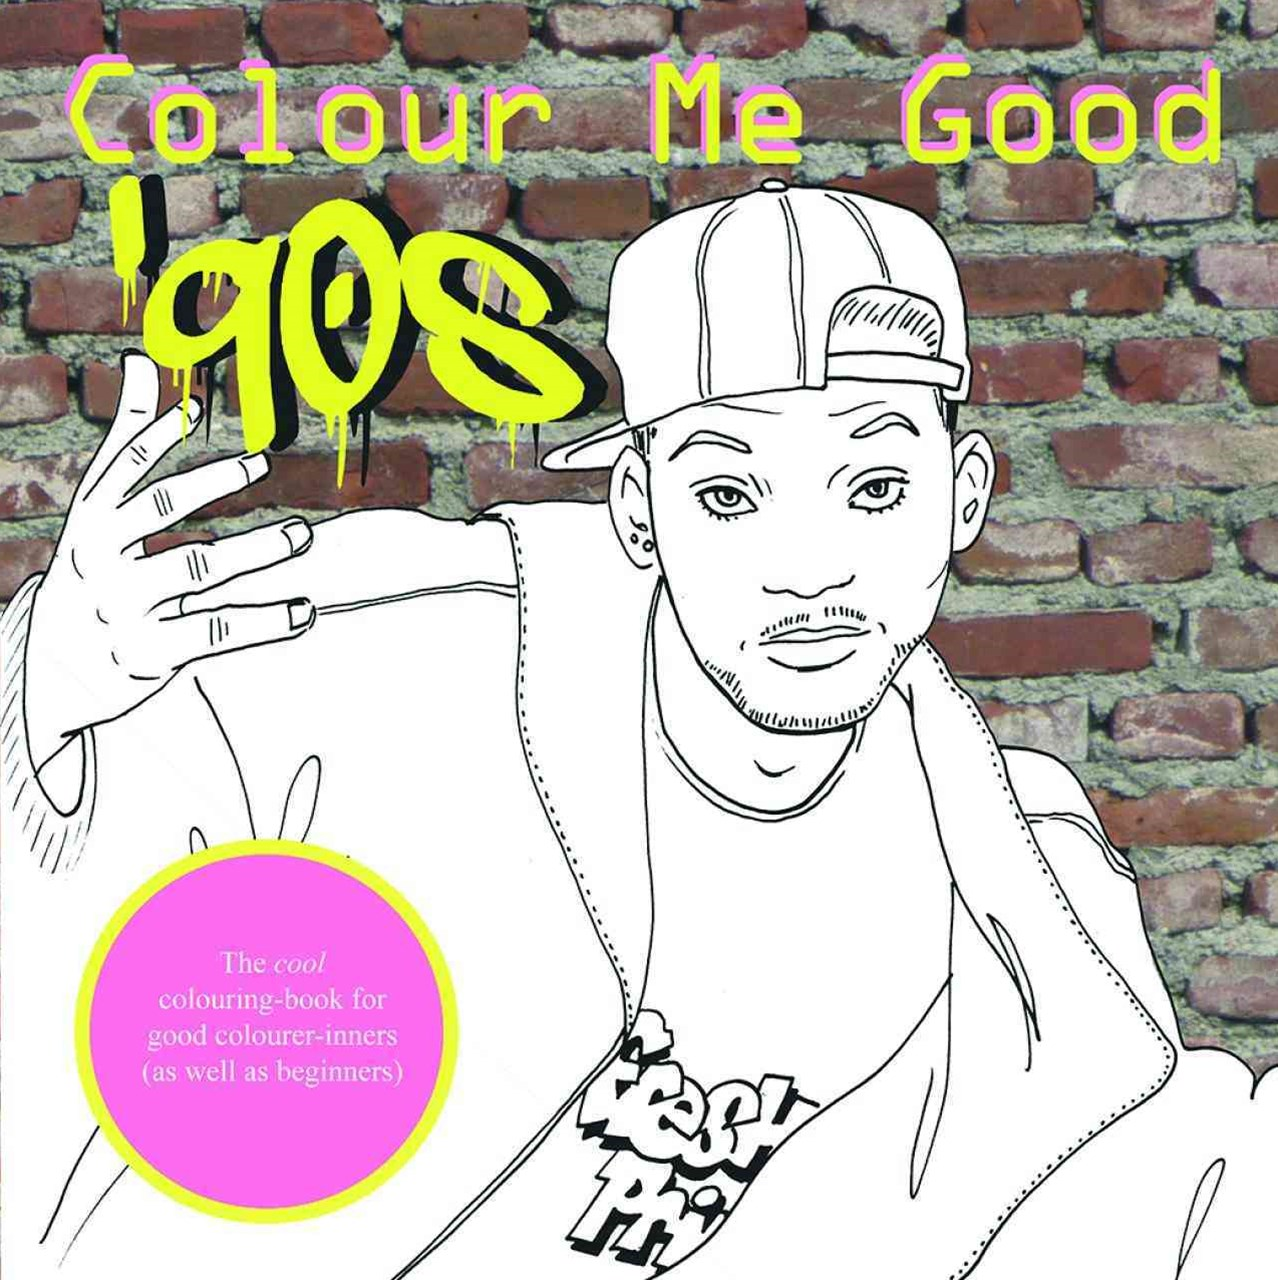 Colour Me Good 90's